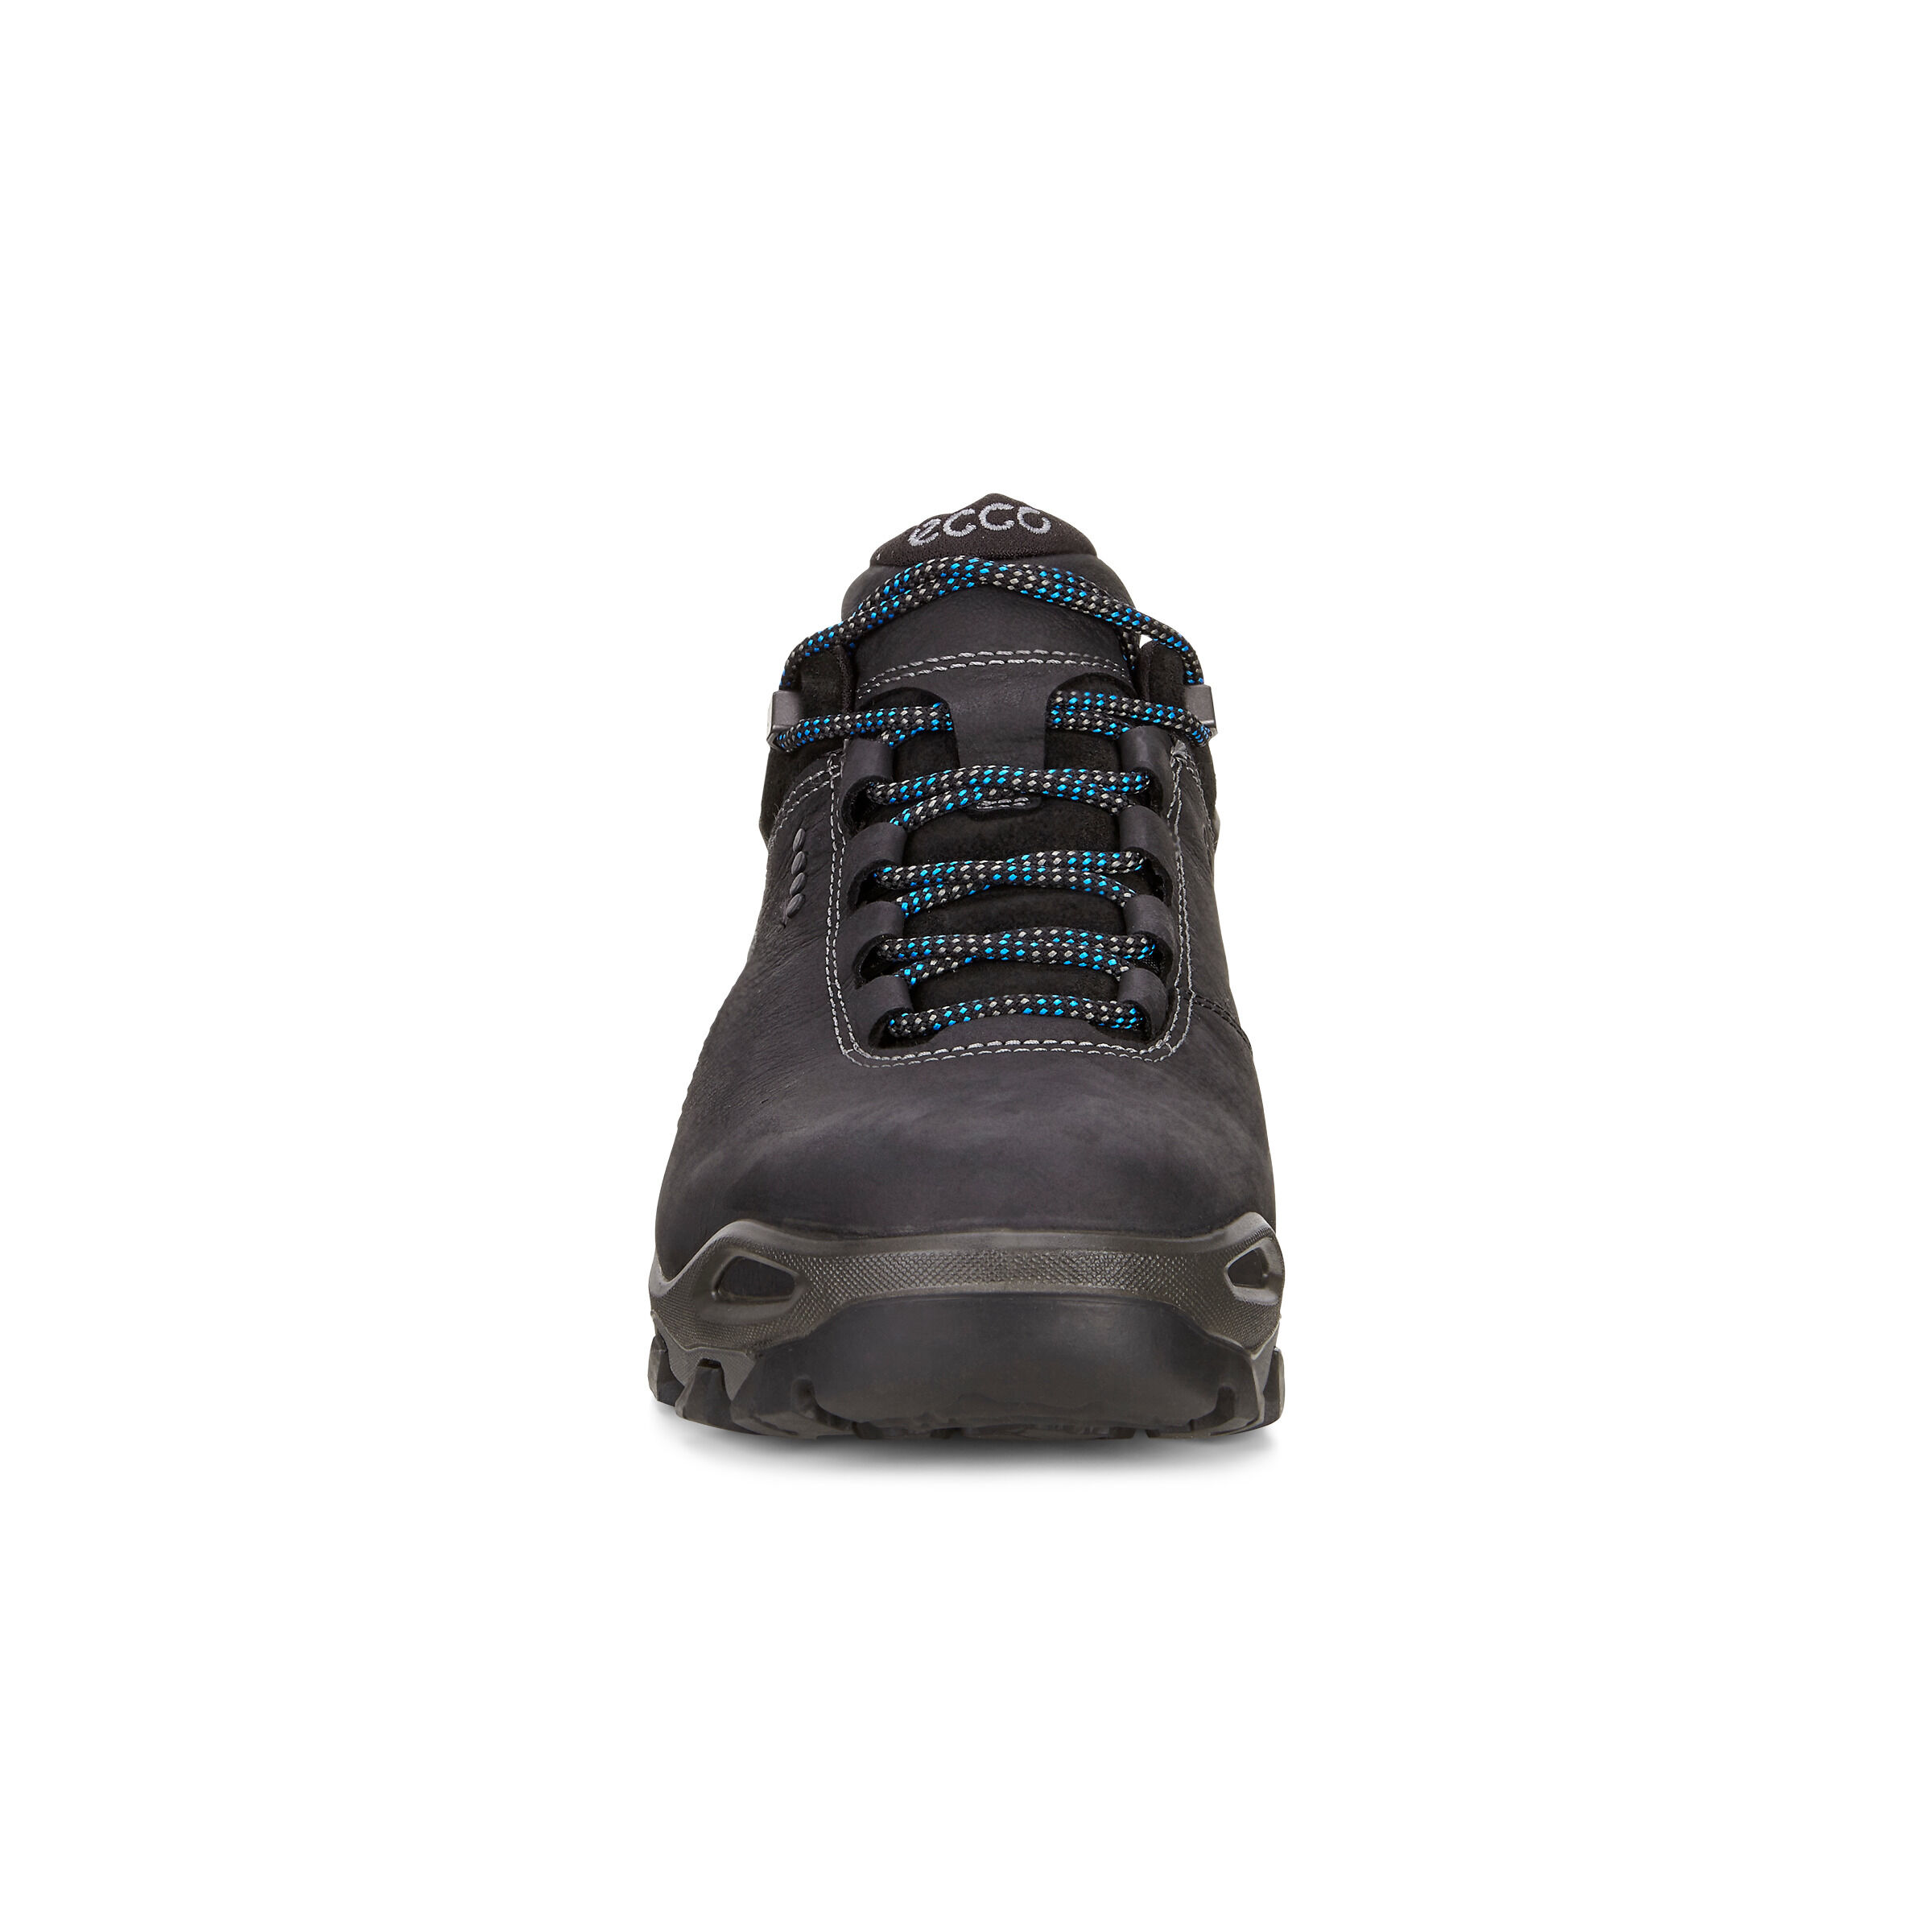 ECCO Terra Evo GTX Low | Men's Hiking Shoes | ECCO? Shoes